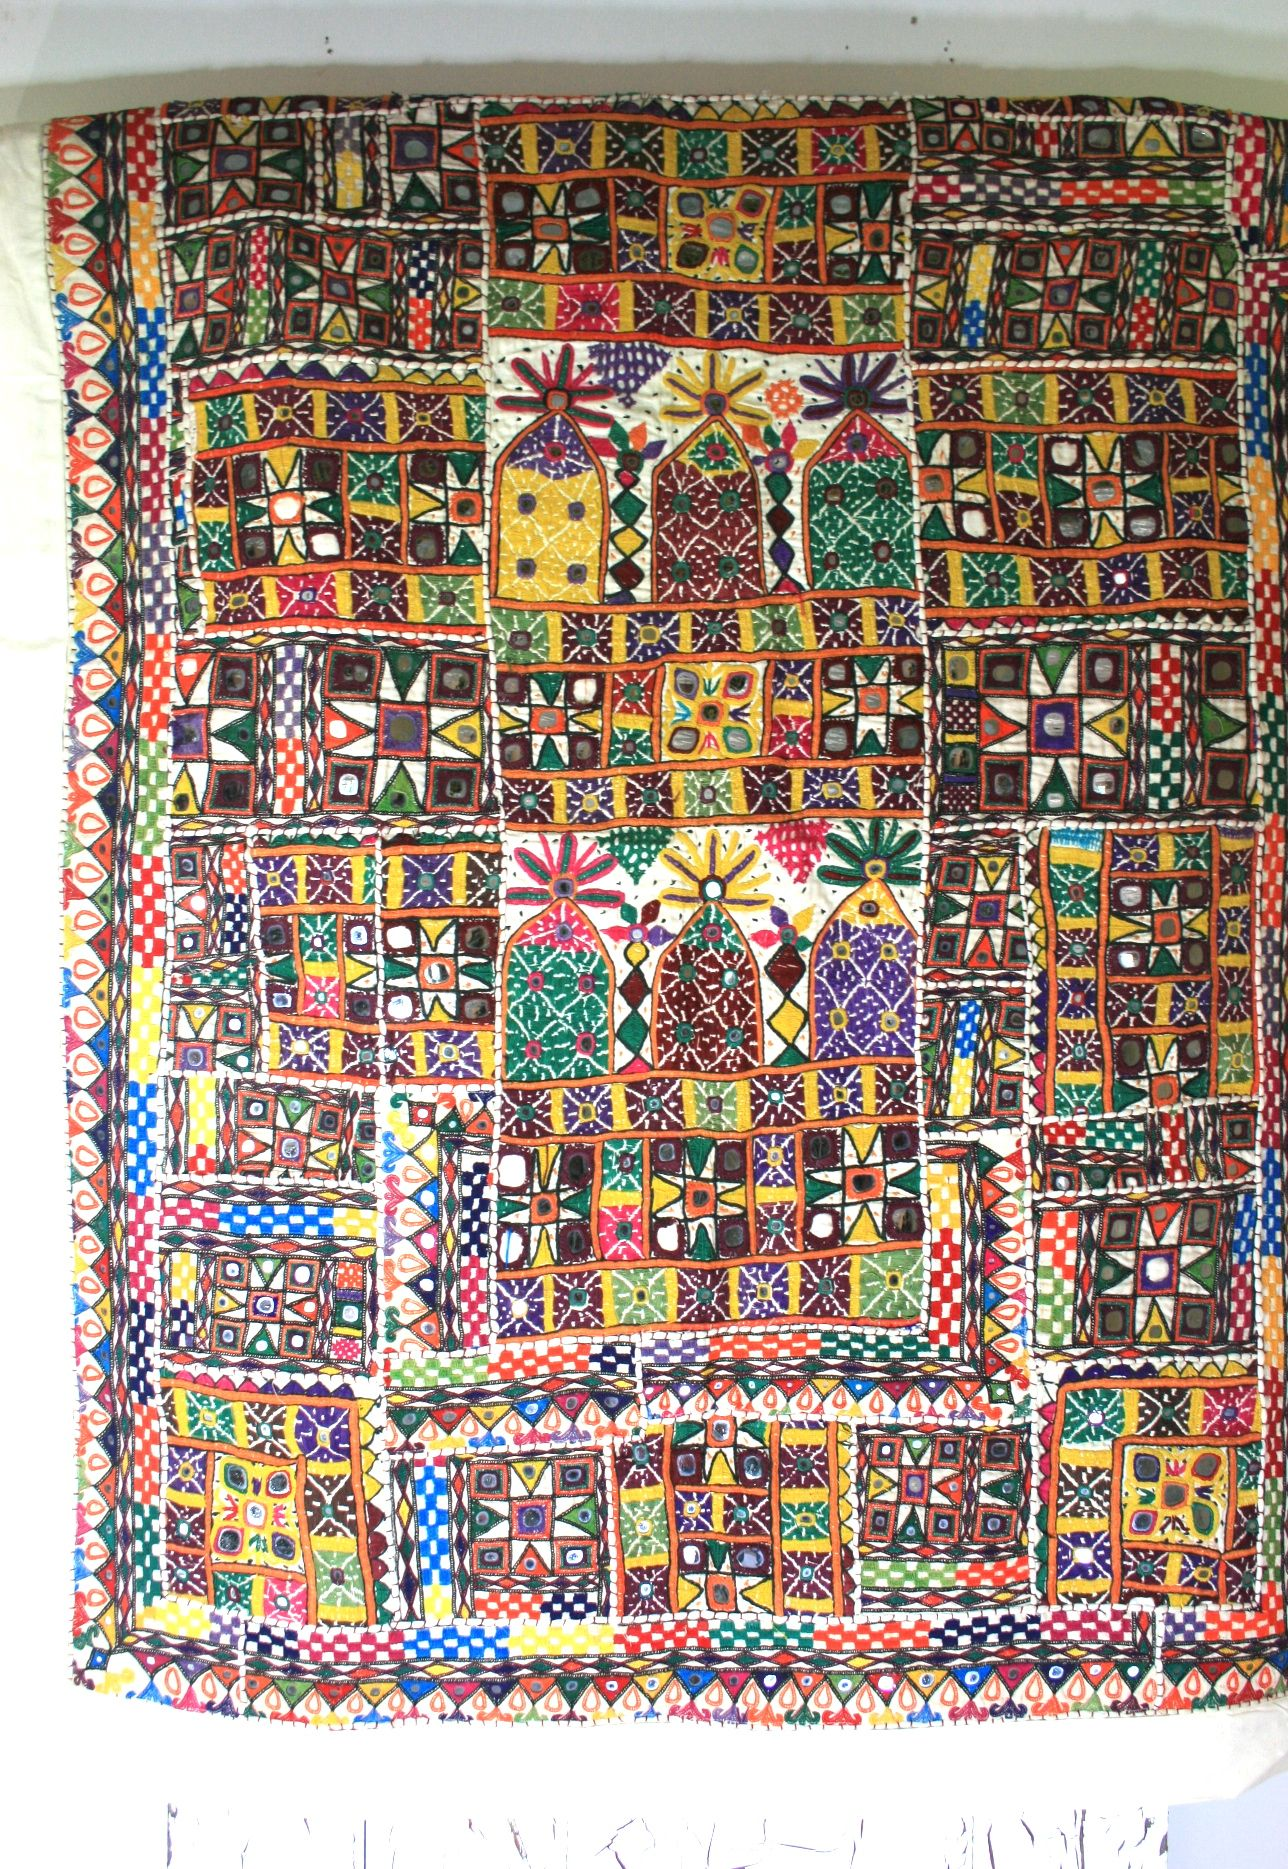 Indian Wall Hang Wall Hanging Fabric Patterns Design Contemporary Art Quilt